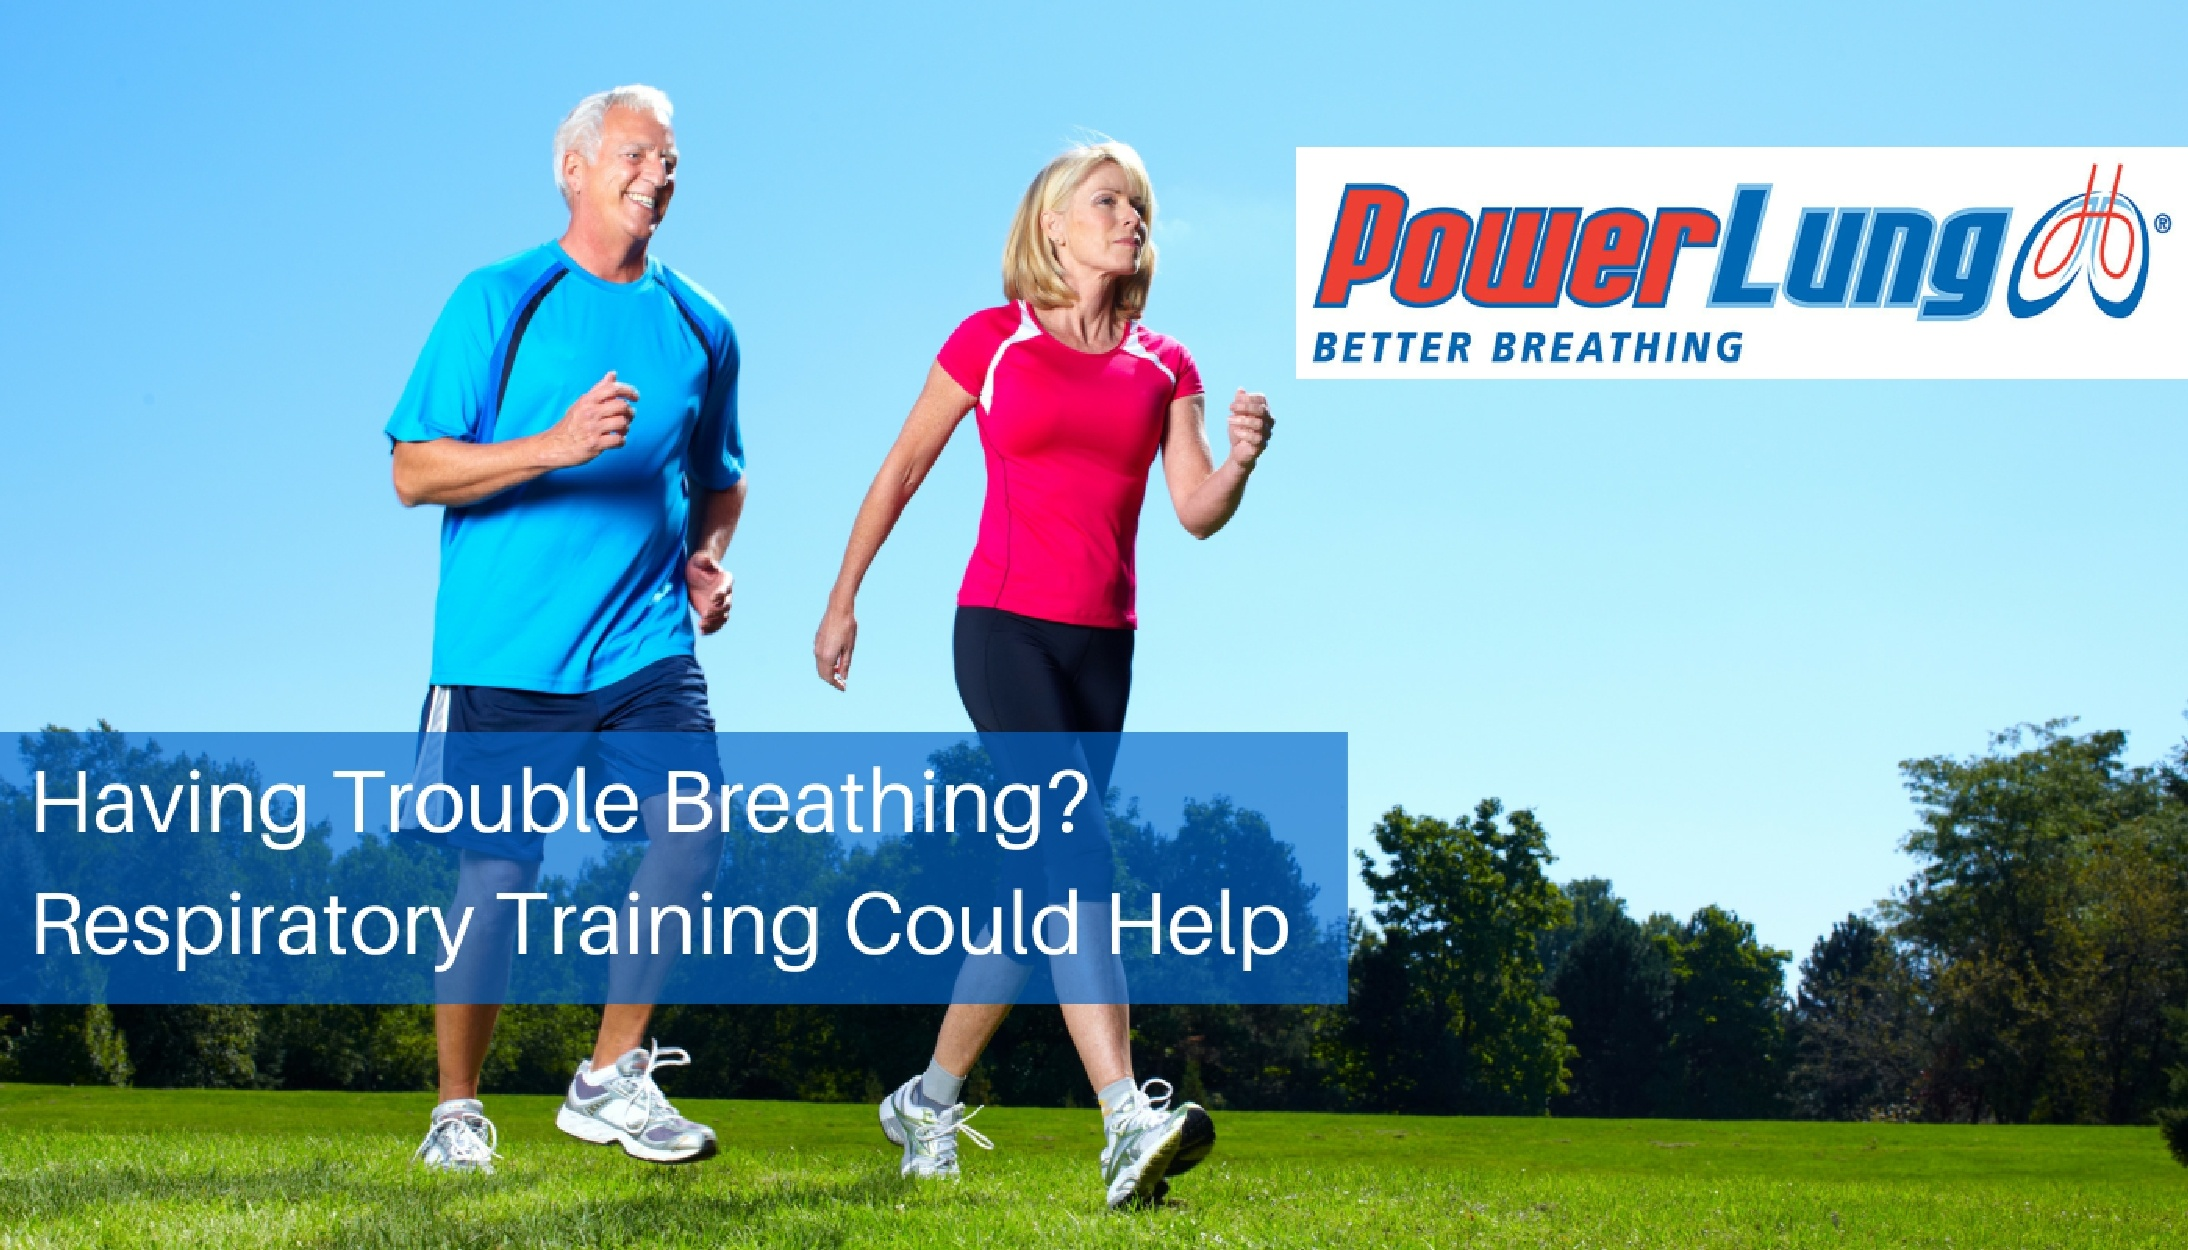 PowerLung - Having Trouble Breathing- Respiratory Training Could Help.jpg